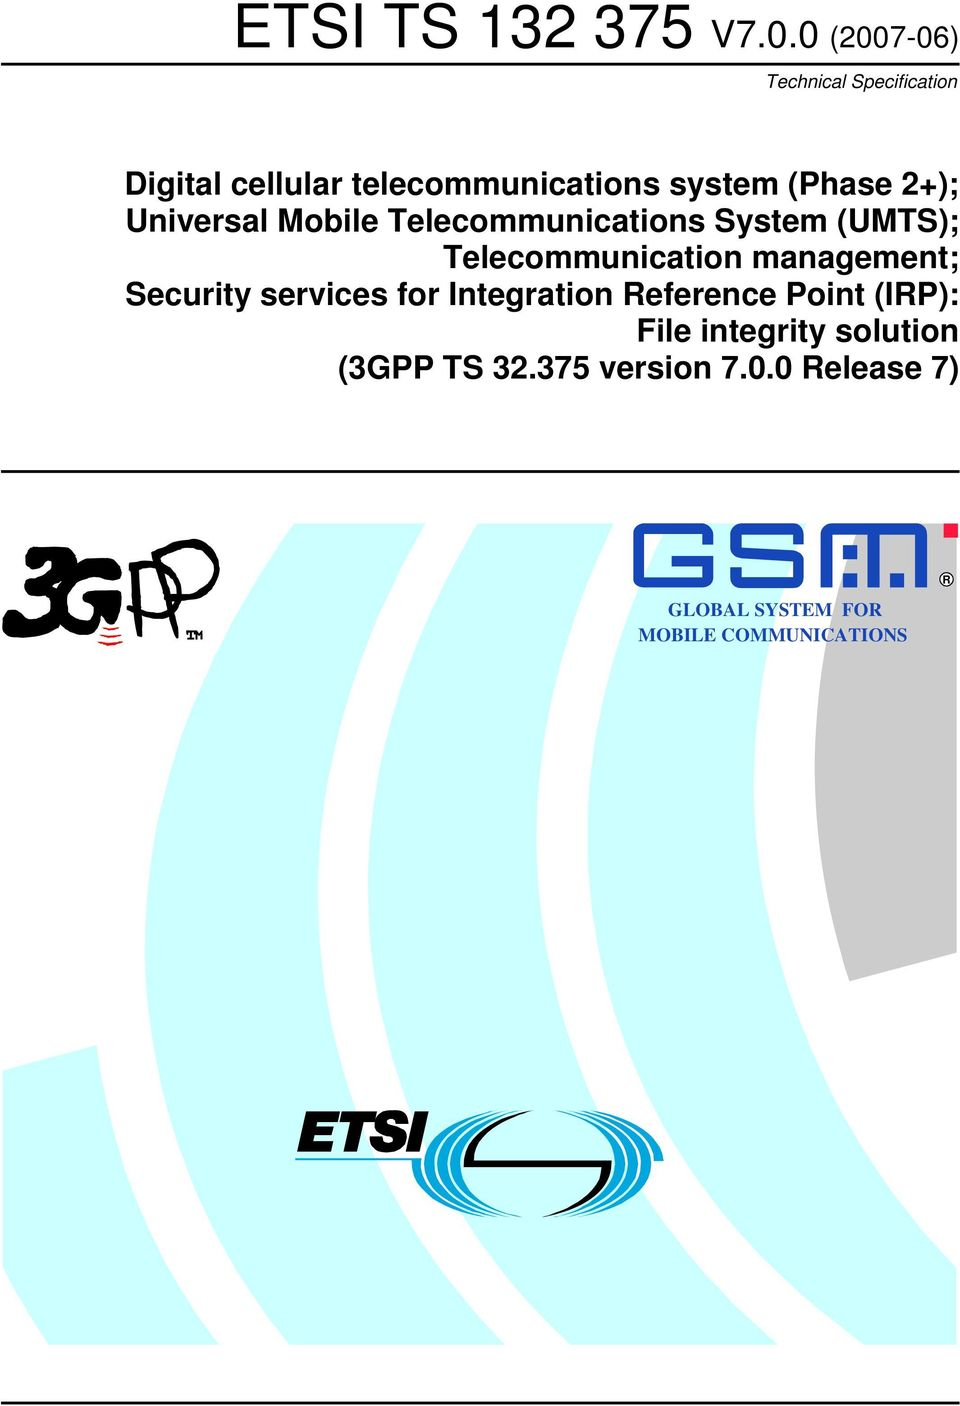 2+); Universal Mobile Telecommunications System (UMTS); Telecommunication management;